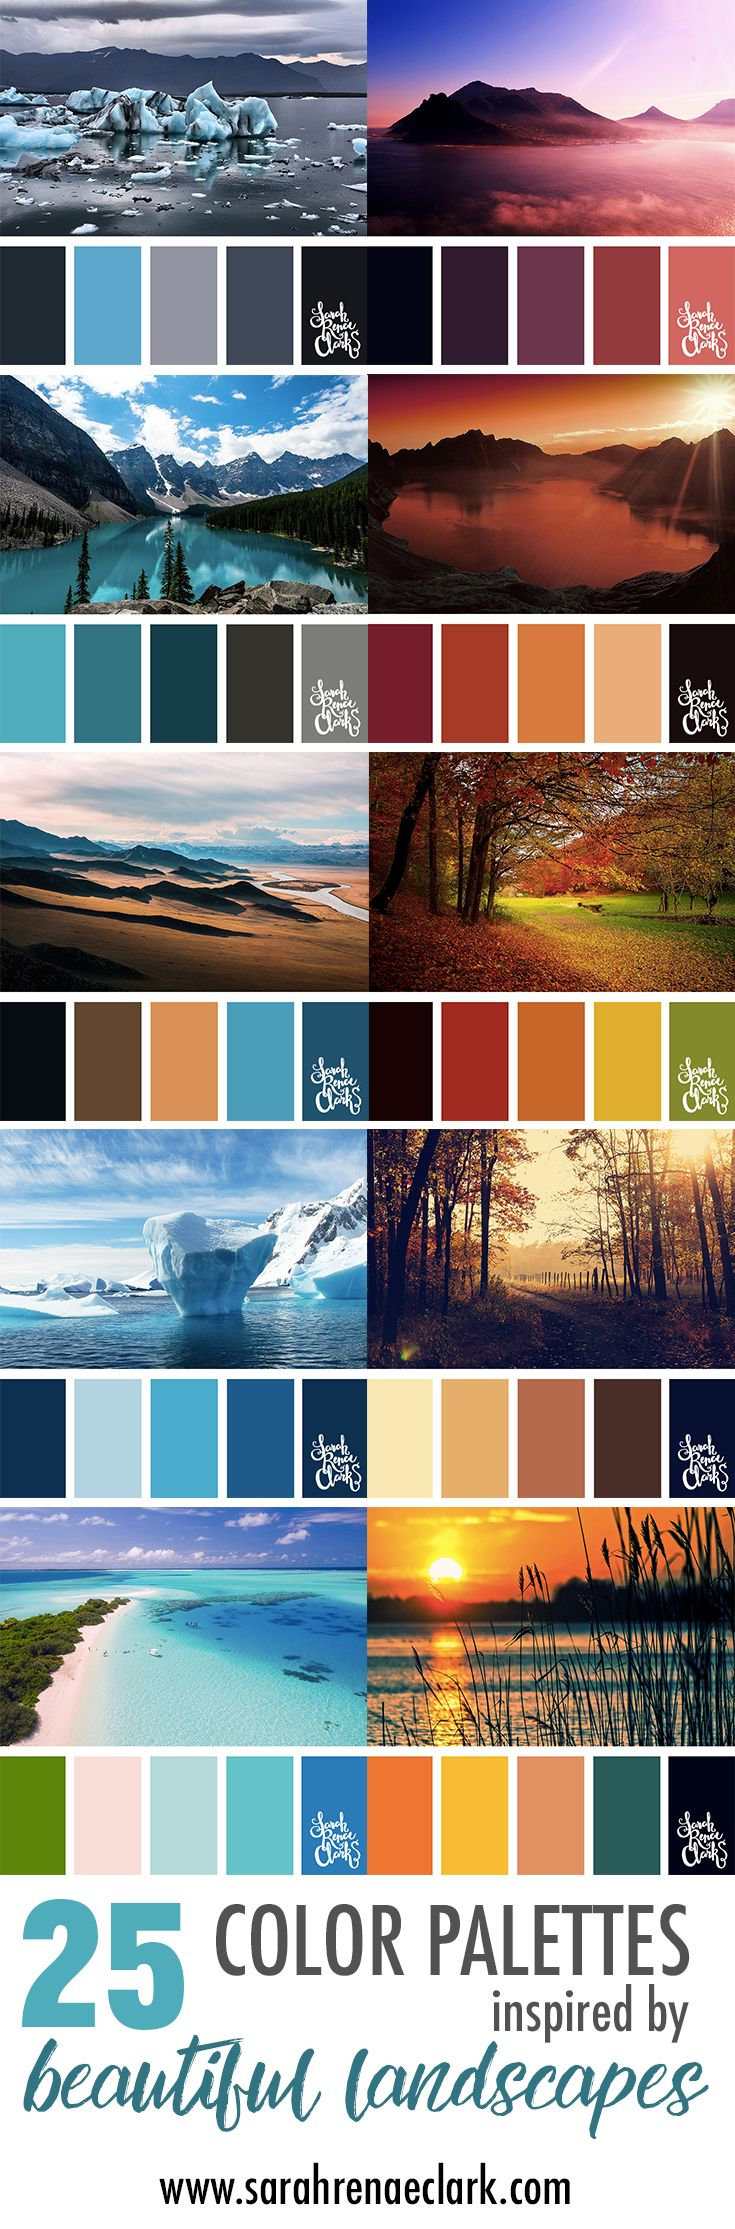 The 25 best color combinations ideas on pinterest clothing 25 color palettes inspired by beautiful landscapes nvjuhfo Images